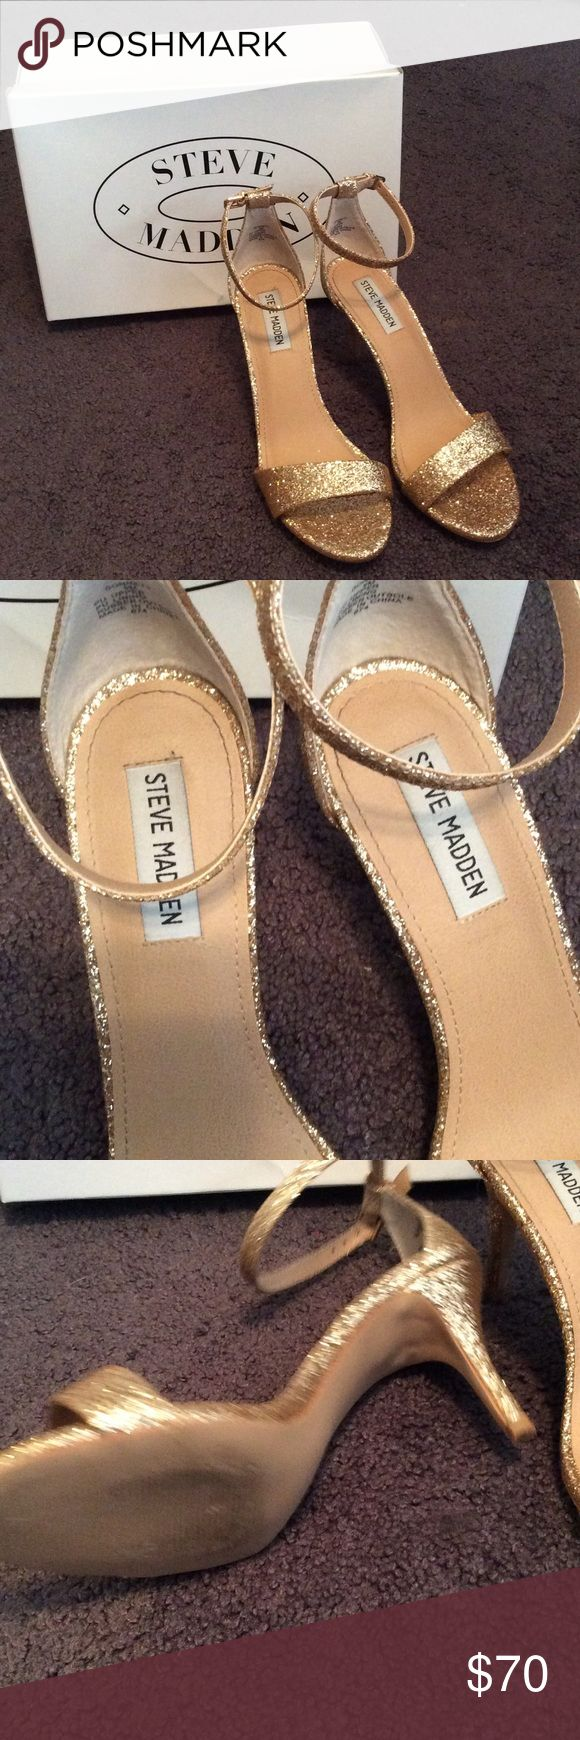 Steve Madden heels💕 Beautiful gold strapped heels, perfect for a night out. Brand new heels, worn once & come with the box. ❤️❤️ Steve Madden Shoes Heels